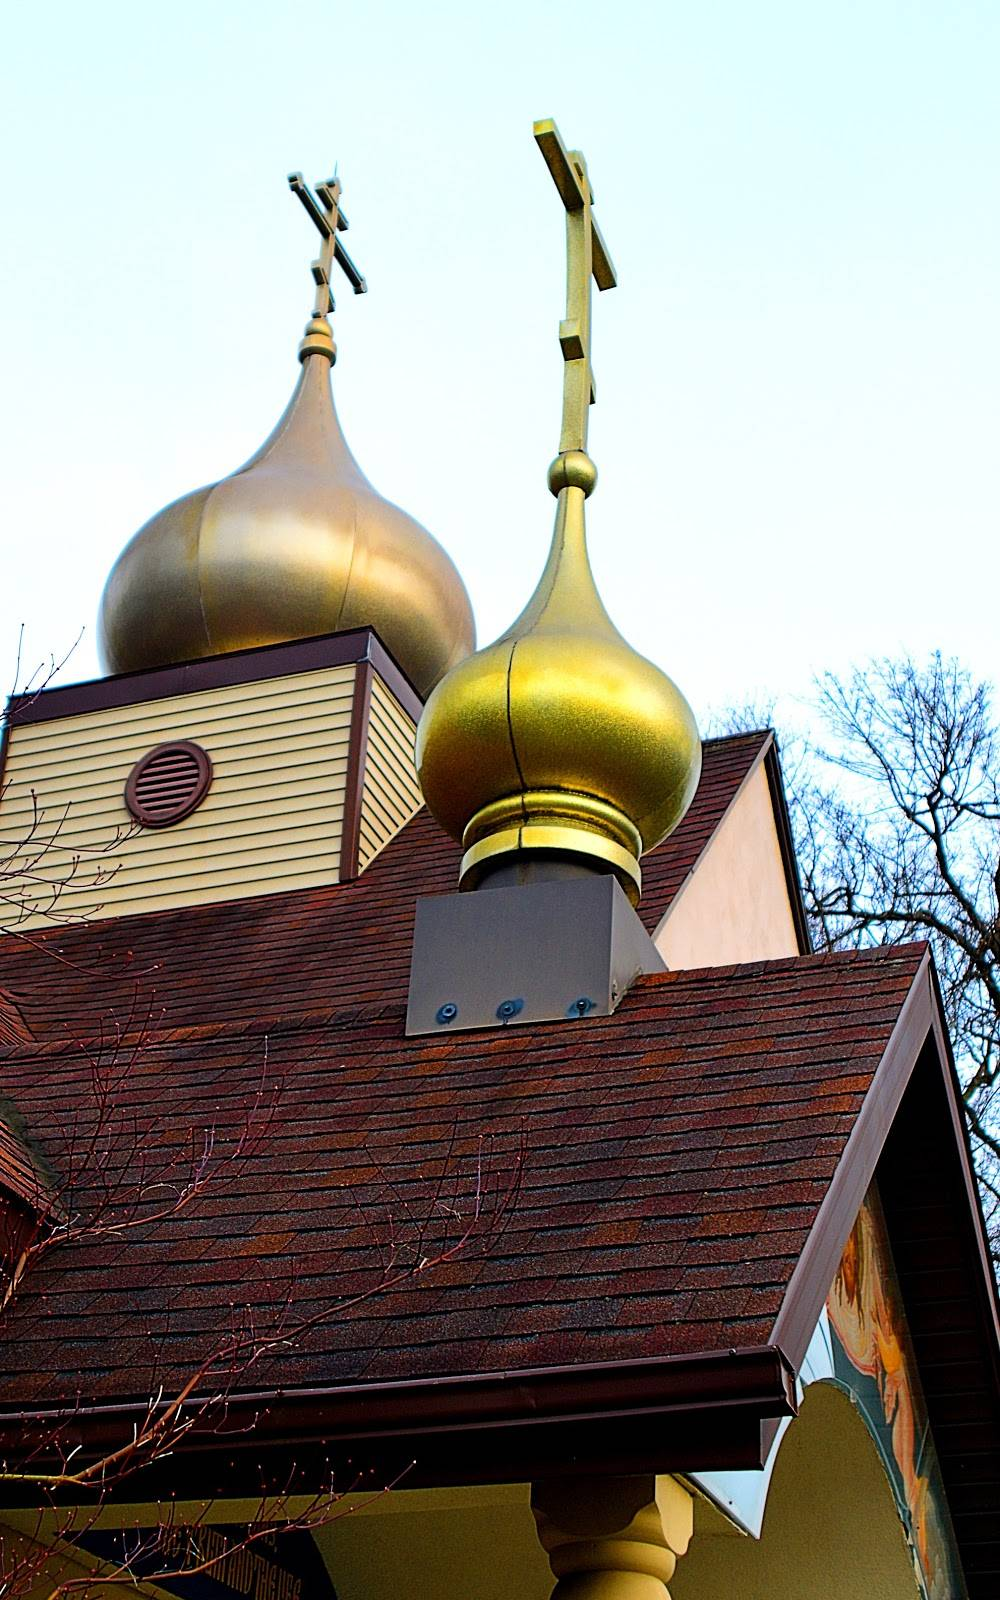 Sts Theodore Orthodox Church - church  | Photo 3 of 9 | Address: 96 Los Robles St, Williamsville, NY 14221, USA | Phone: (716) 634-6712